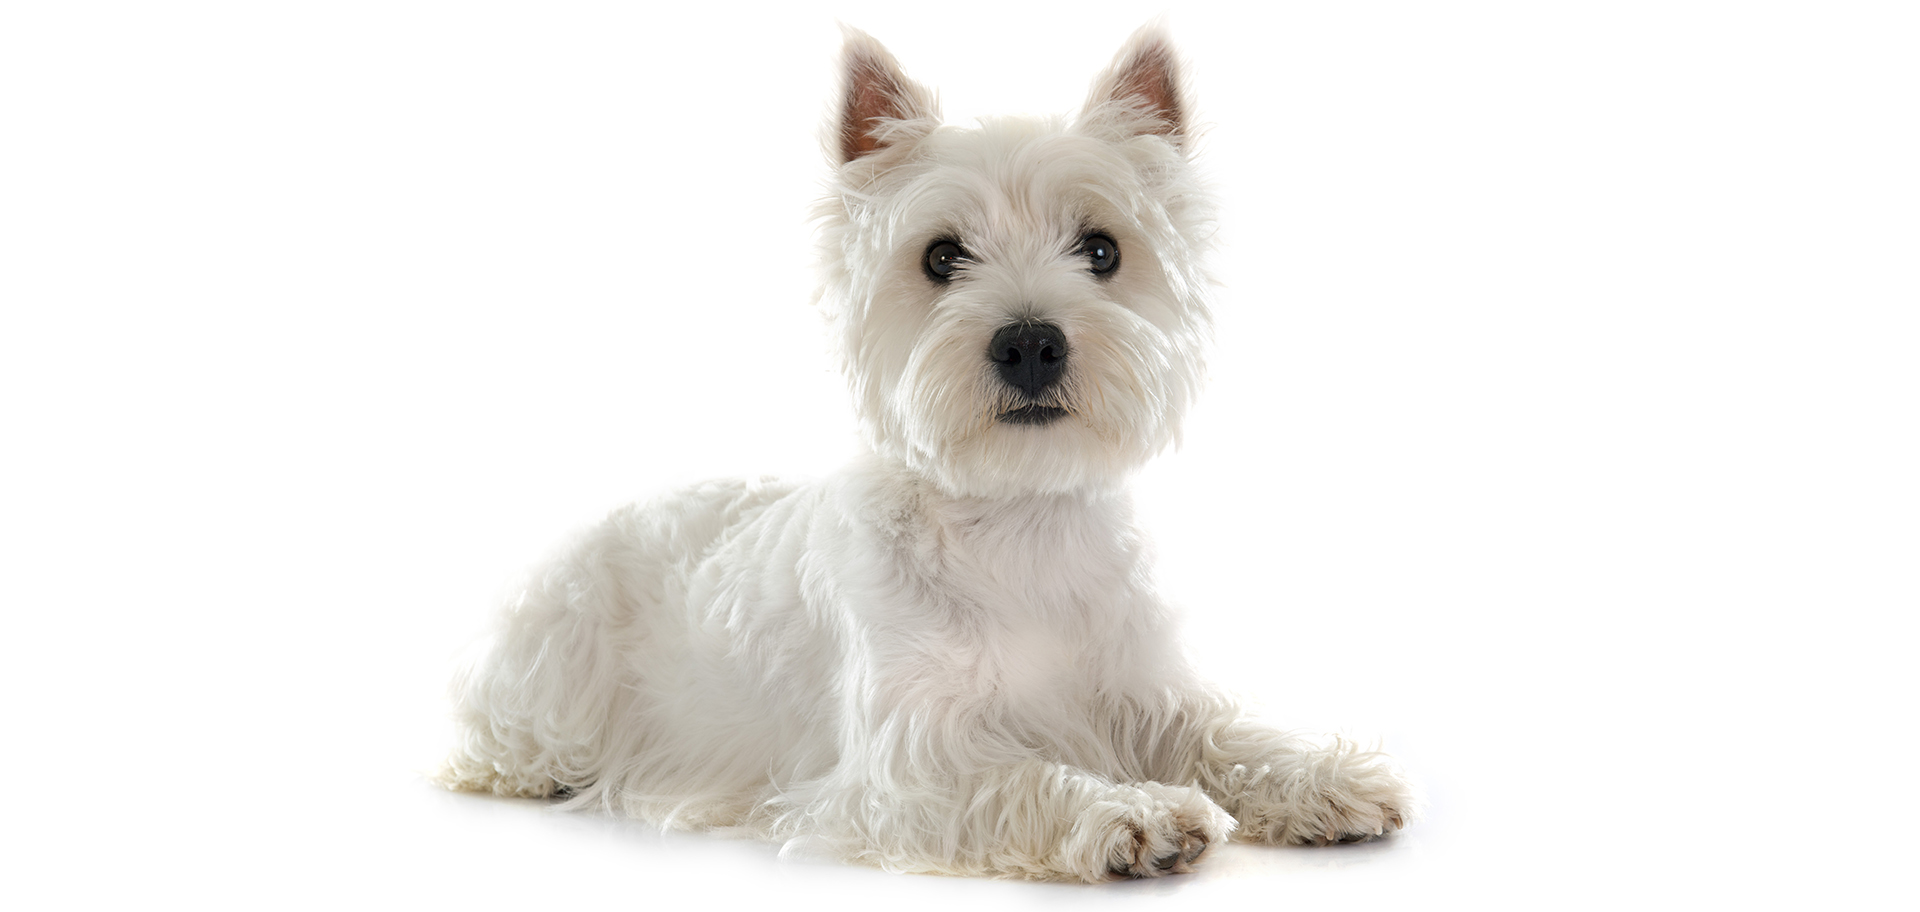 Breed West Highland White Terrier